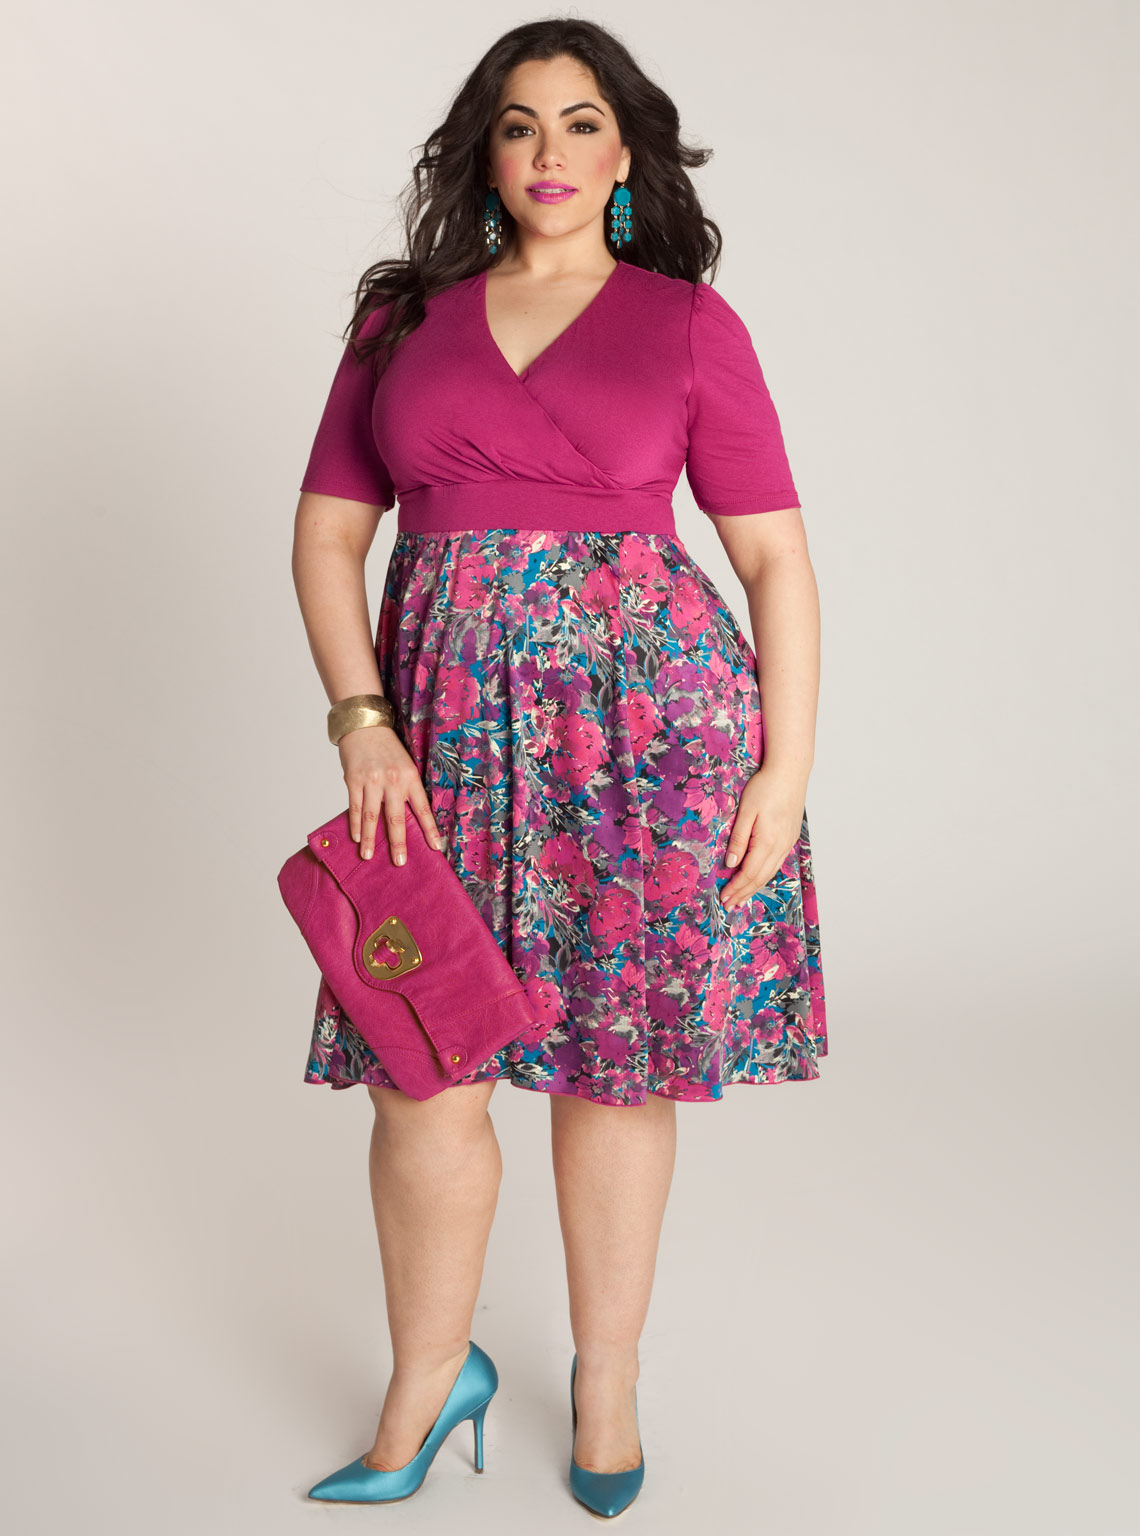 Shop for trendy plus size sexy dresses and plus size bridesmaid dresses for discount prices at AMIClubwear. Looking for a plus size birthday outfits or a plus sized party dress then shop now. Looking for a plus size birthday outfits or a plus sized party dress then shop now.